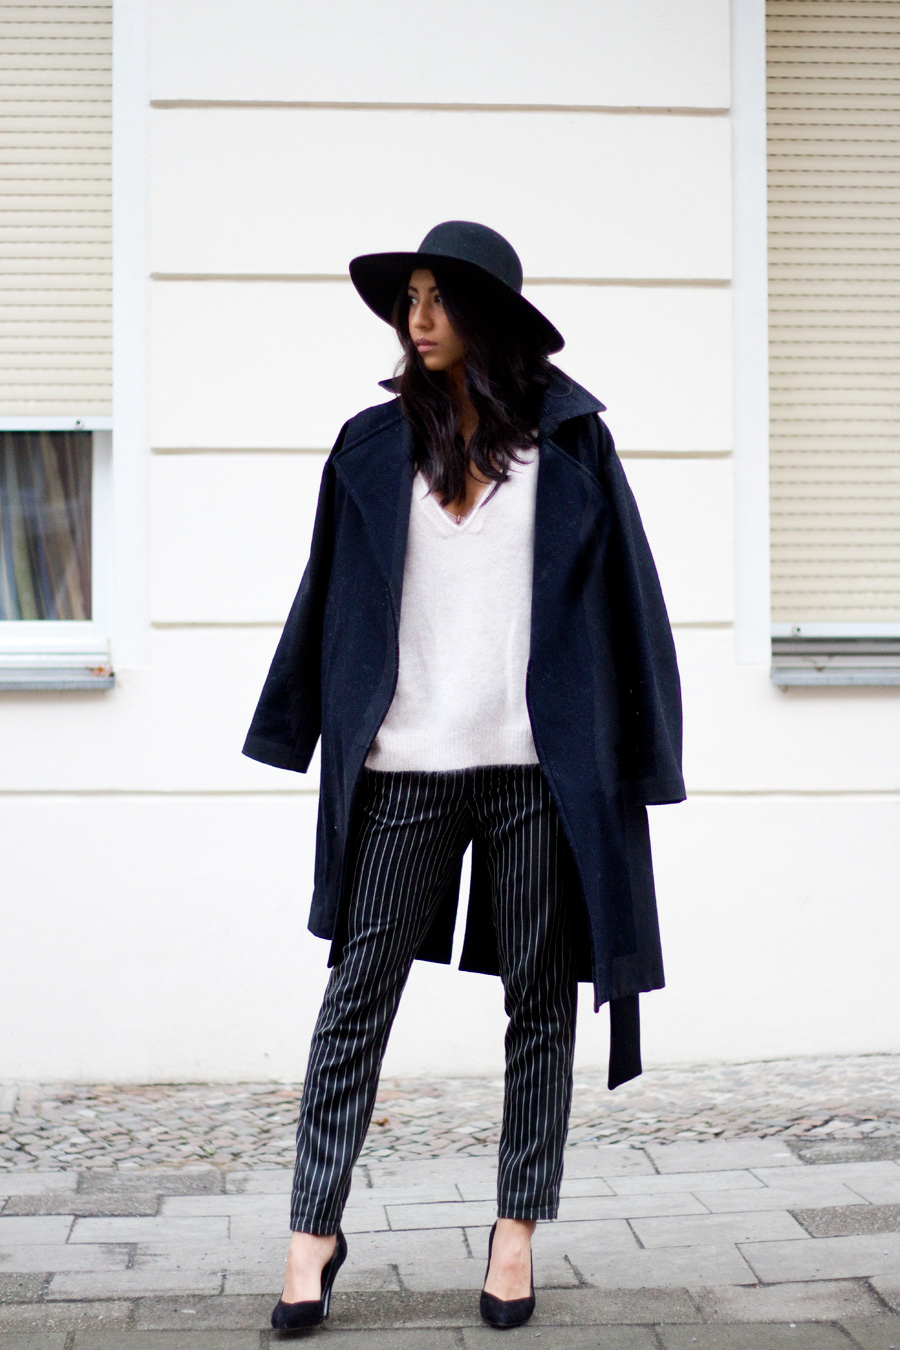 Pinstripe Outfits: Kayla Seah is wearing Alistair pinstripe trousers from Free People